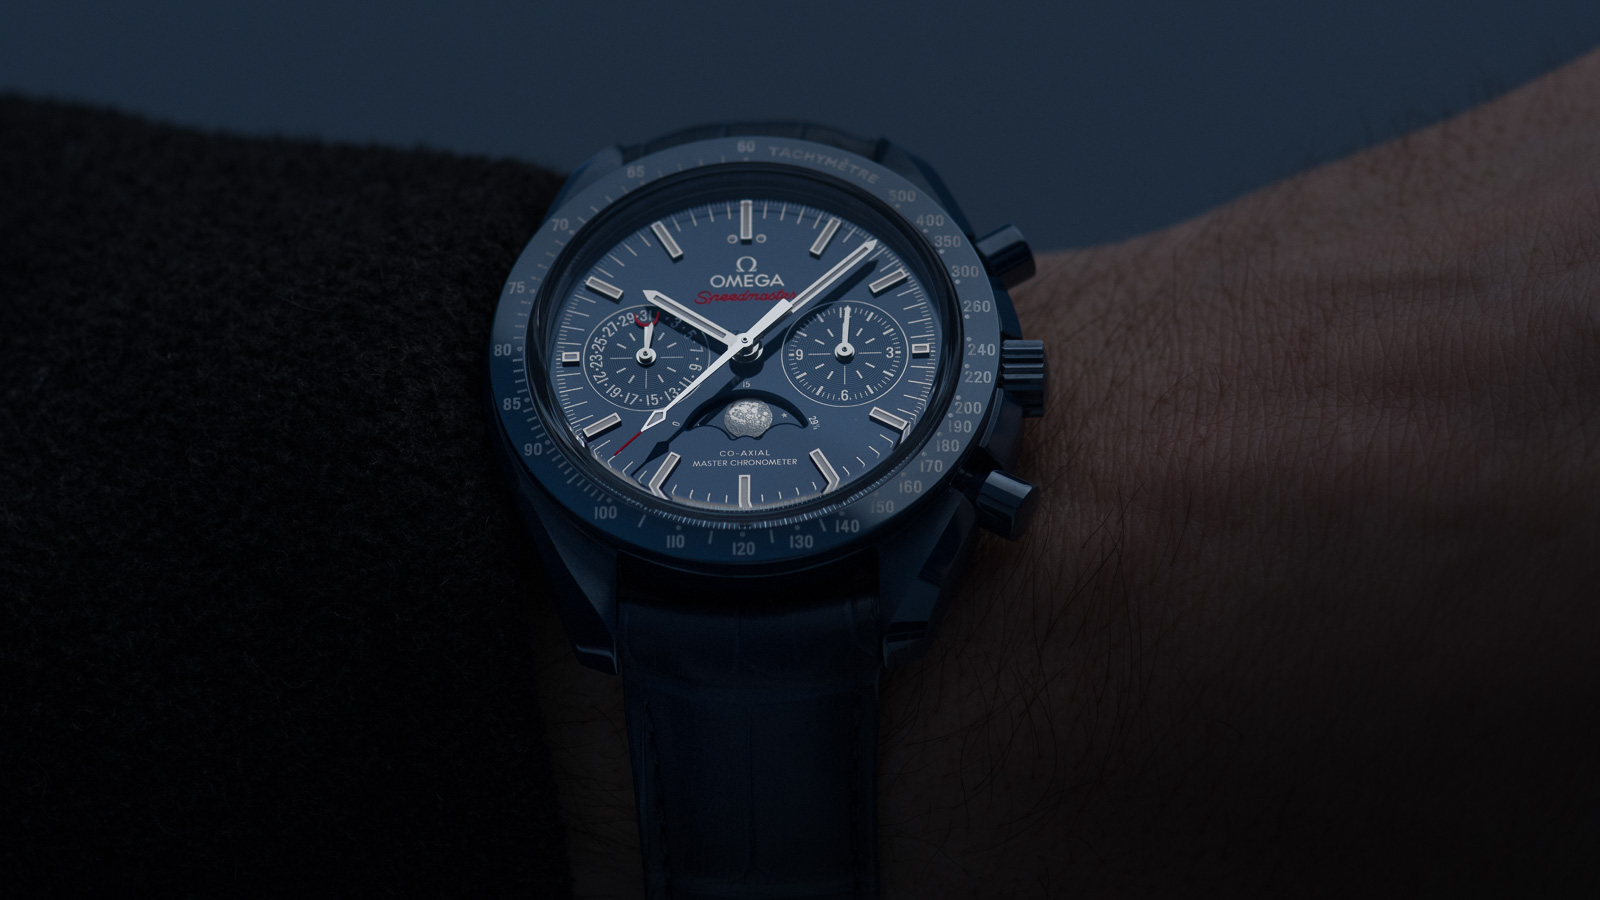 Speedmaster ムーンウォッチ Moonwatch Omega Co‑Axial Master Chronometer Moonphase Chronograph 44.25 mm ウォッチ - 304.93.44.52.03.001